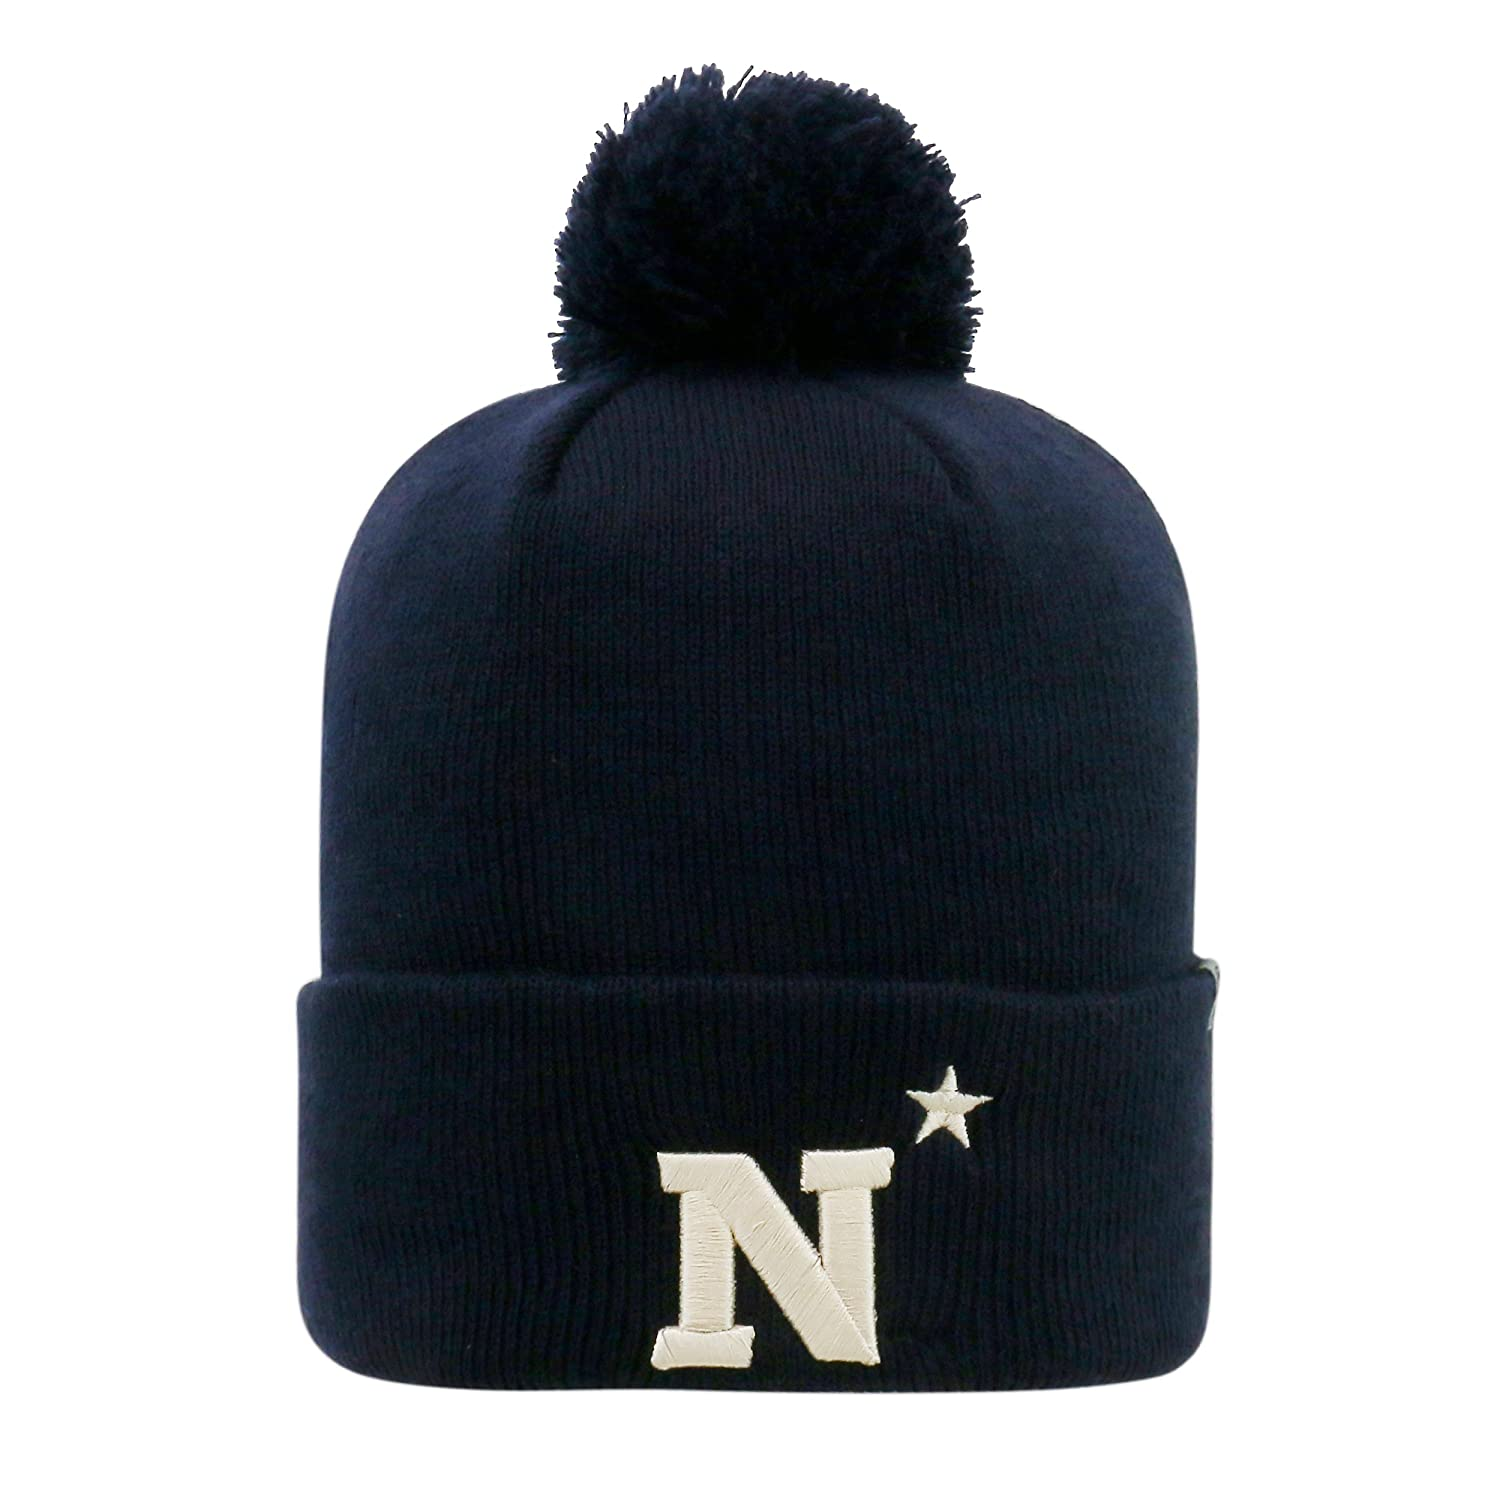 Top of the World両面Cuff Beanie Hat with Pom Pom – NCAA Cuffedニットキャップ  Navy Midshipmen B01M6Z4OIE